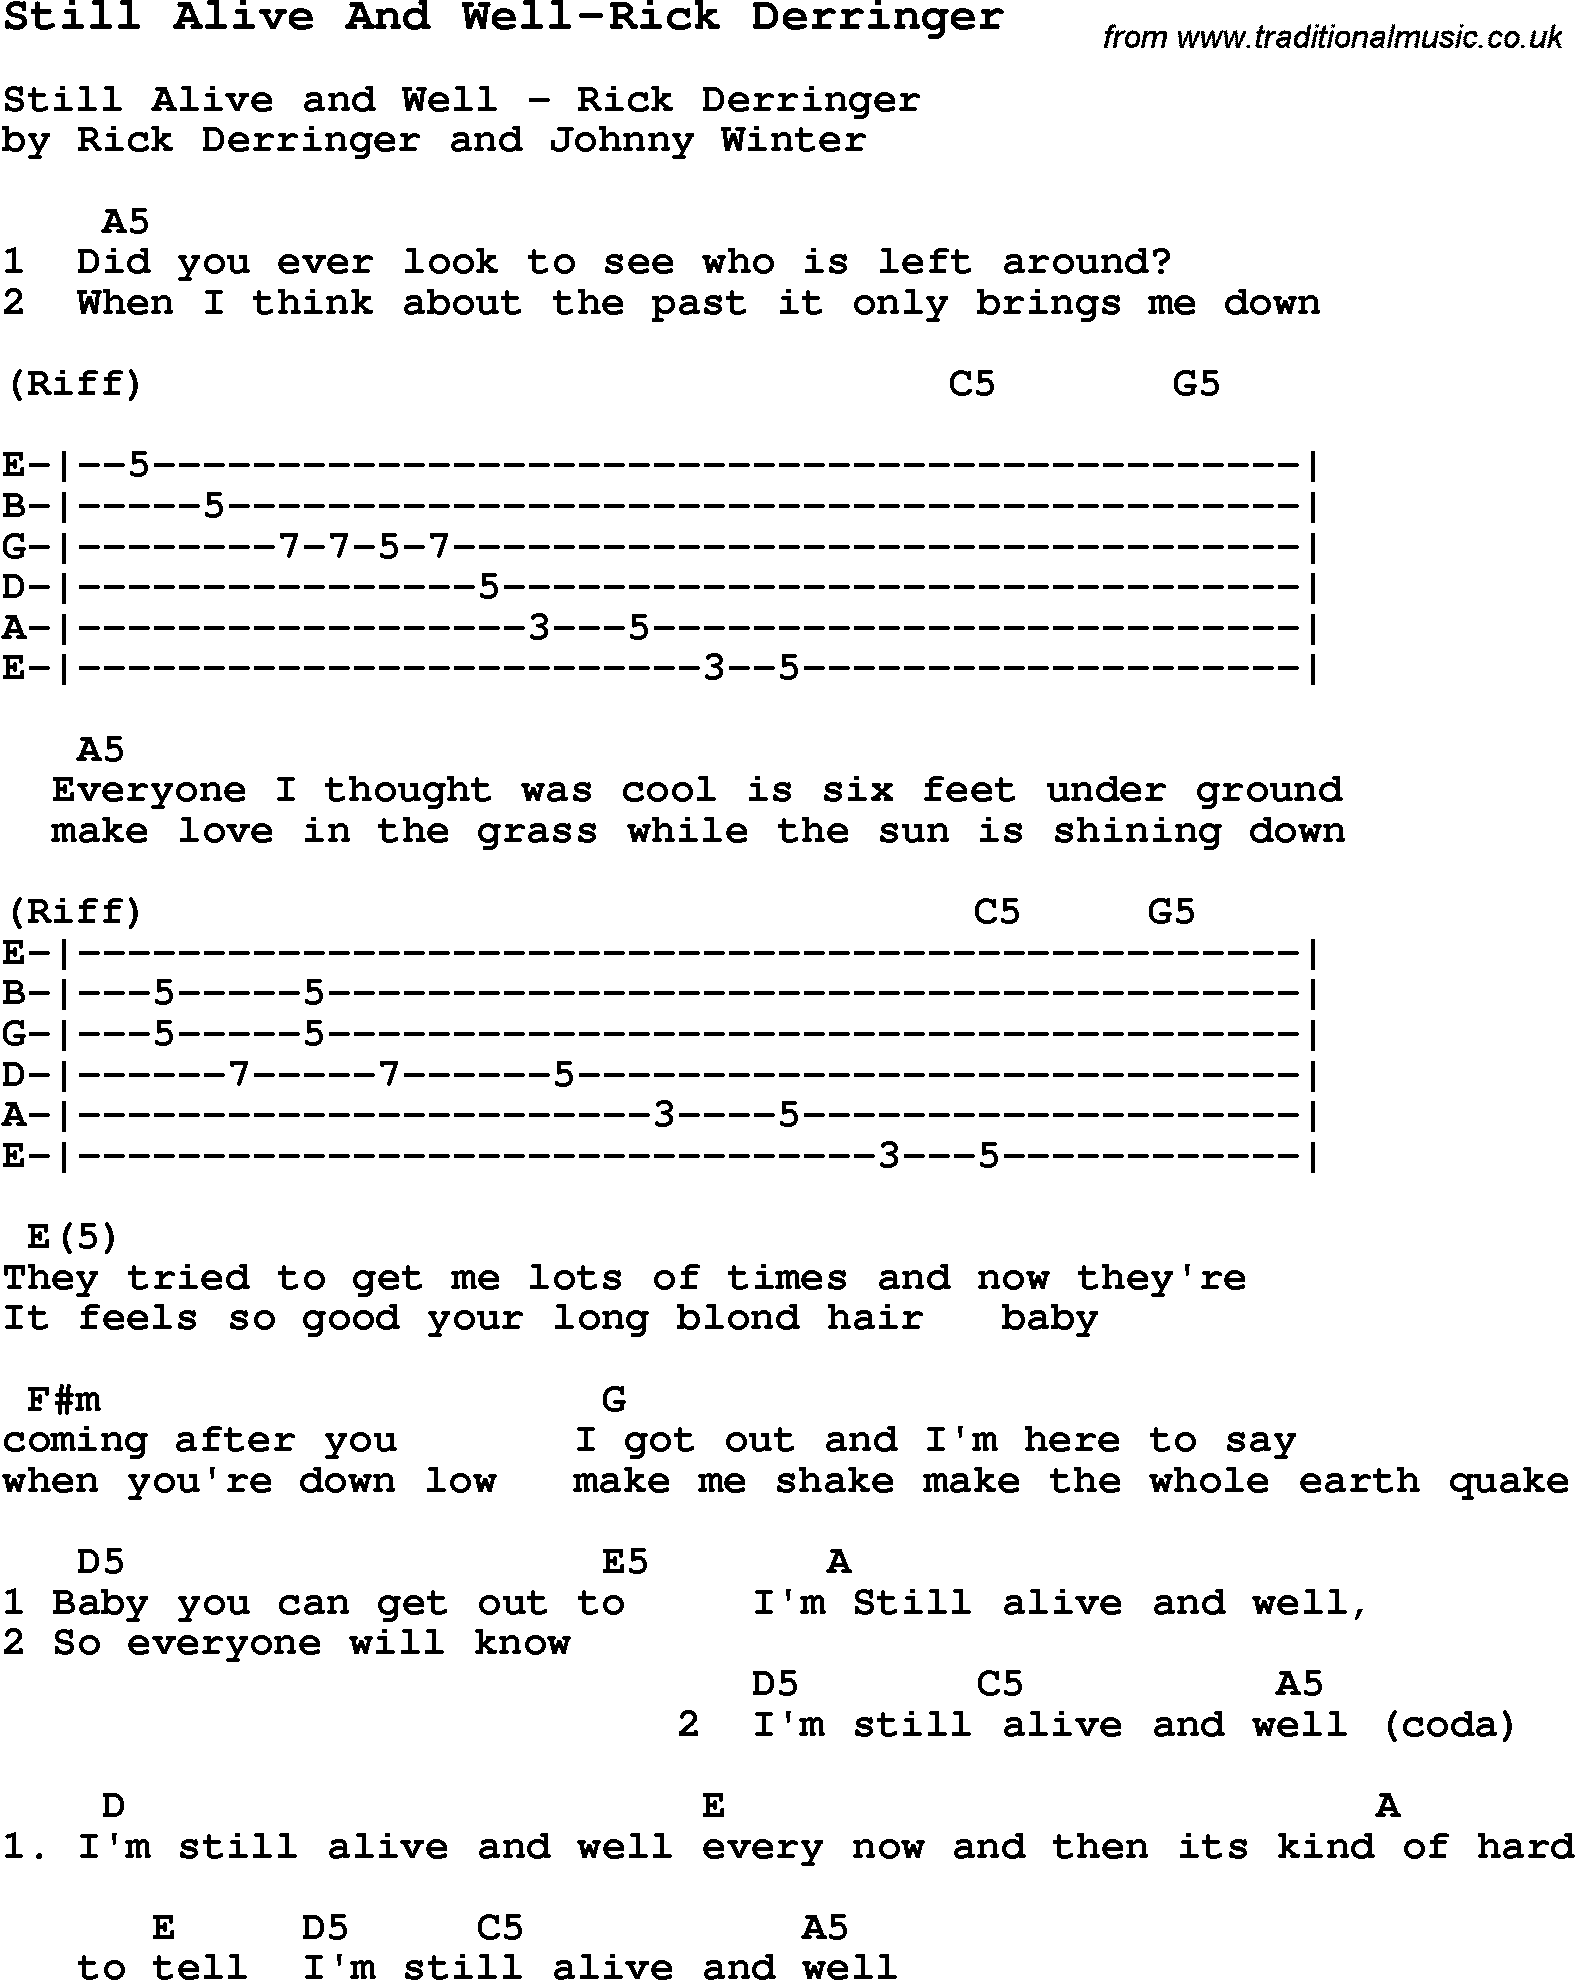 Blues Guitar Lesson For Still Alive And Well Rick Derringer With